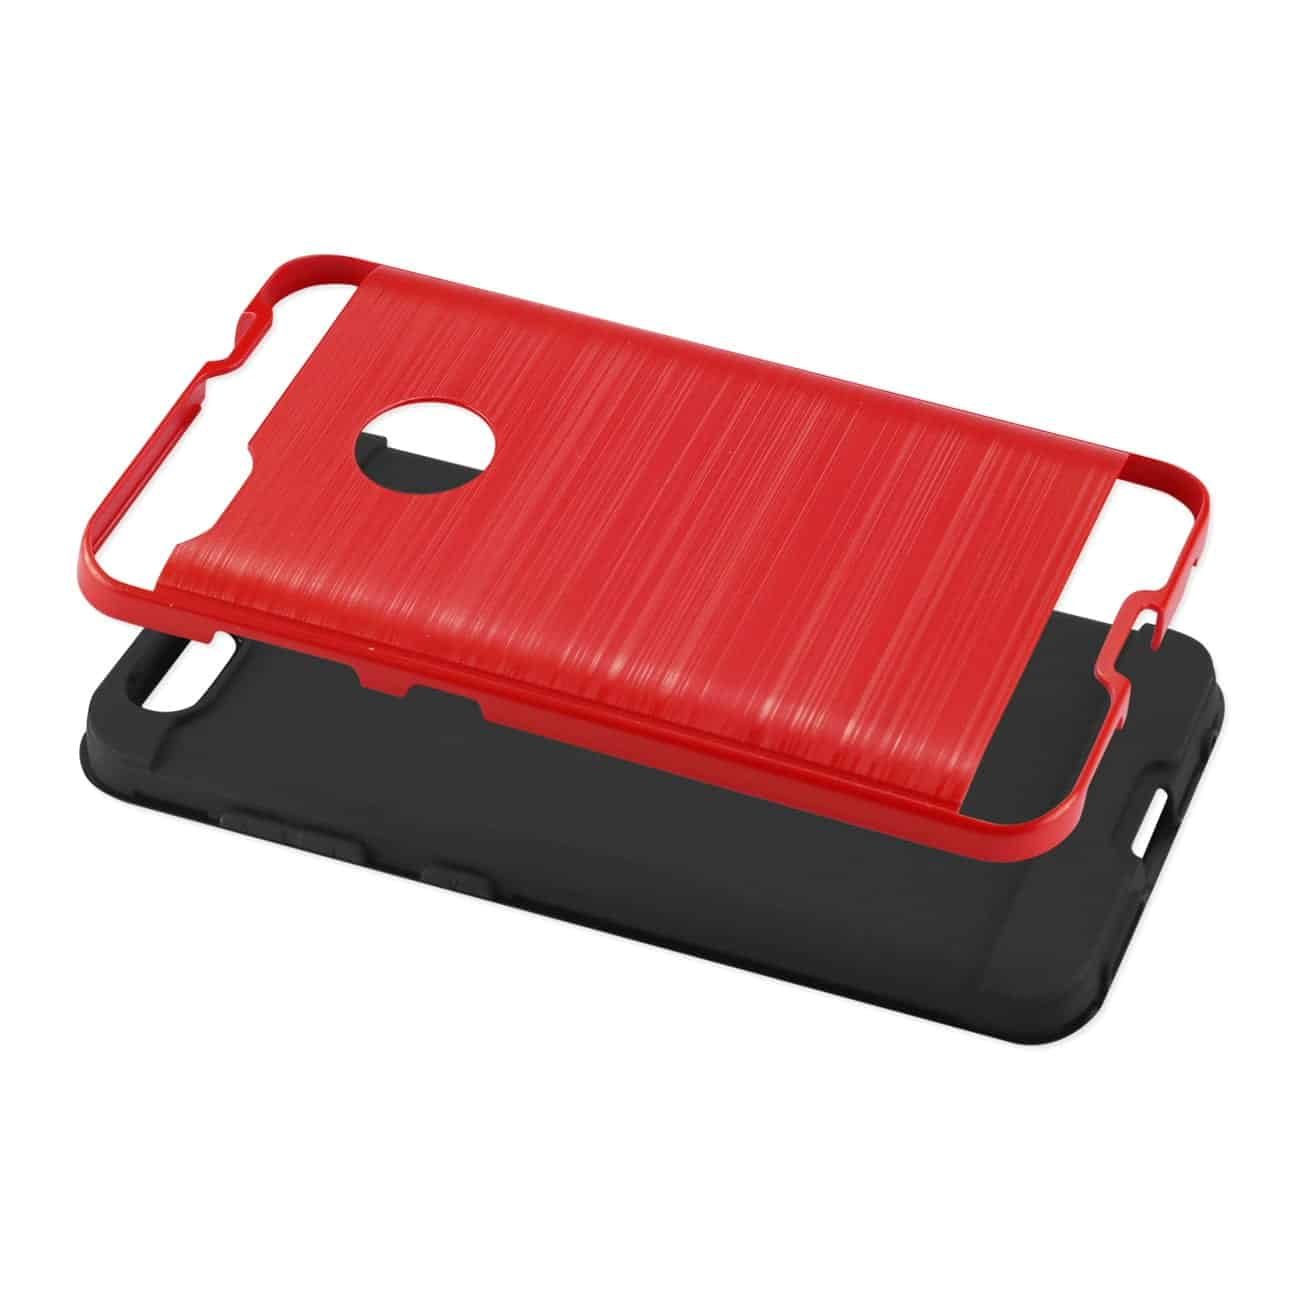 ZTE Blade X / Z965 Hybrid Metal Brushed Texture Case In Red